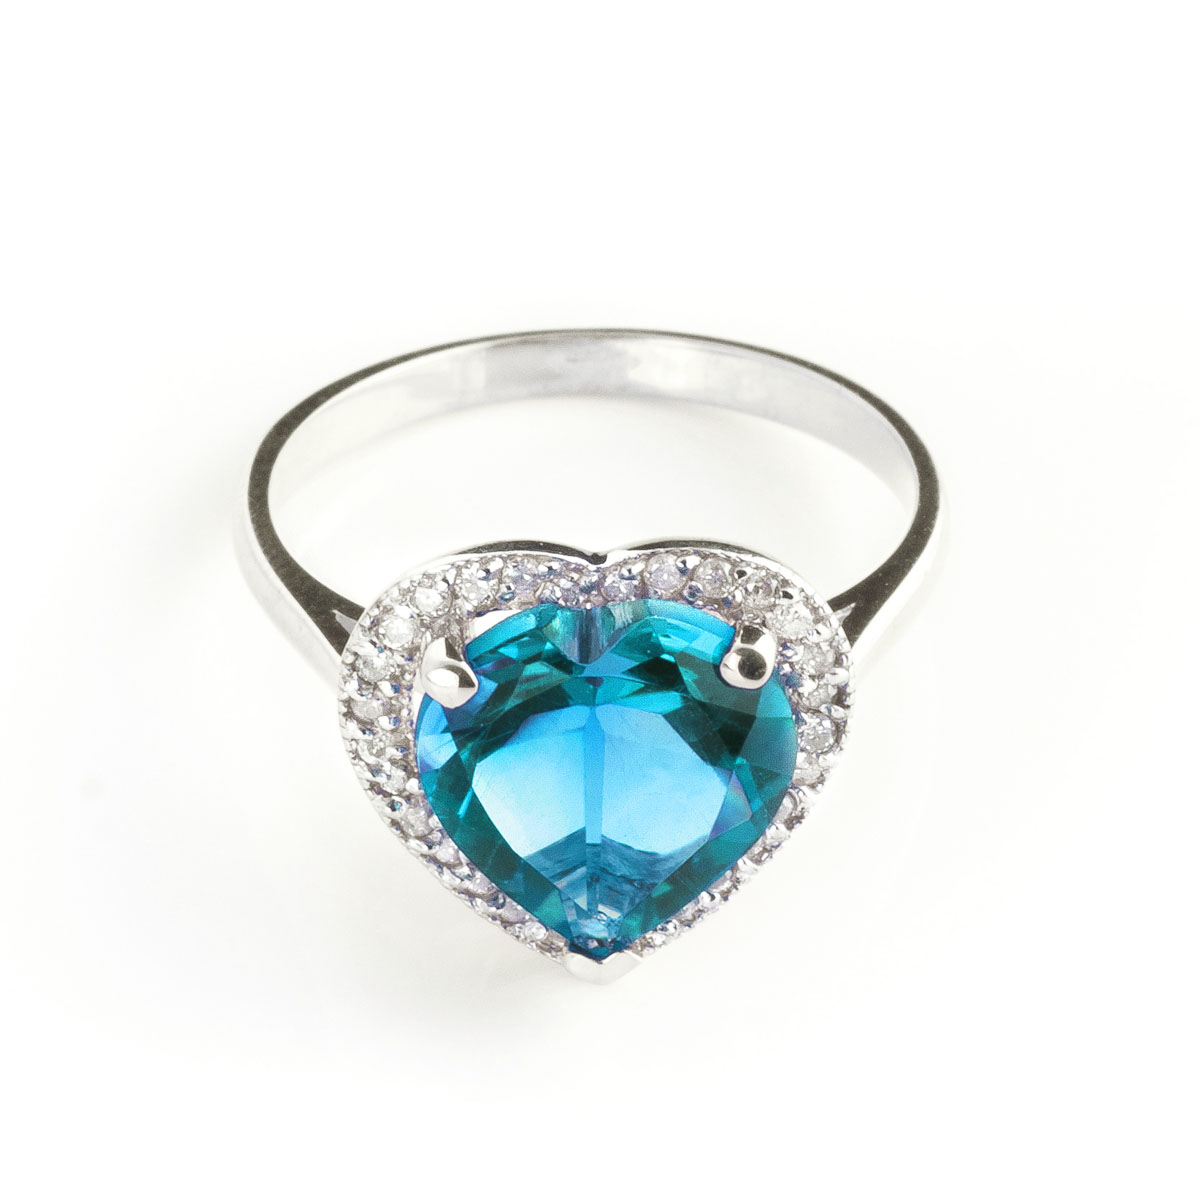 Blue Topaz Halo Ring 6.44 ctw in 9ct White Gold